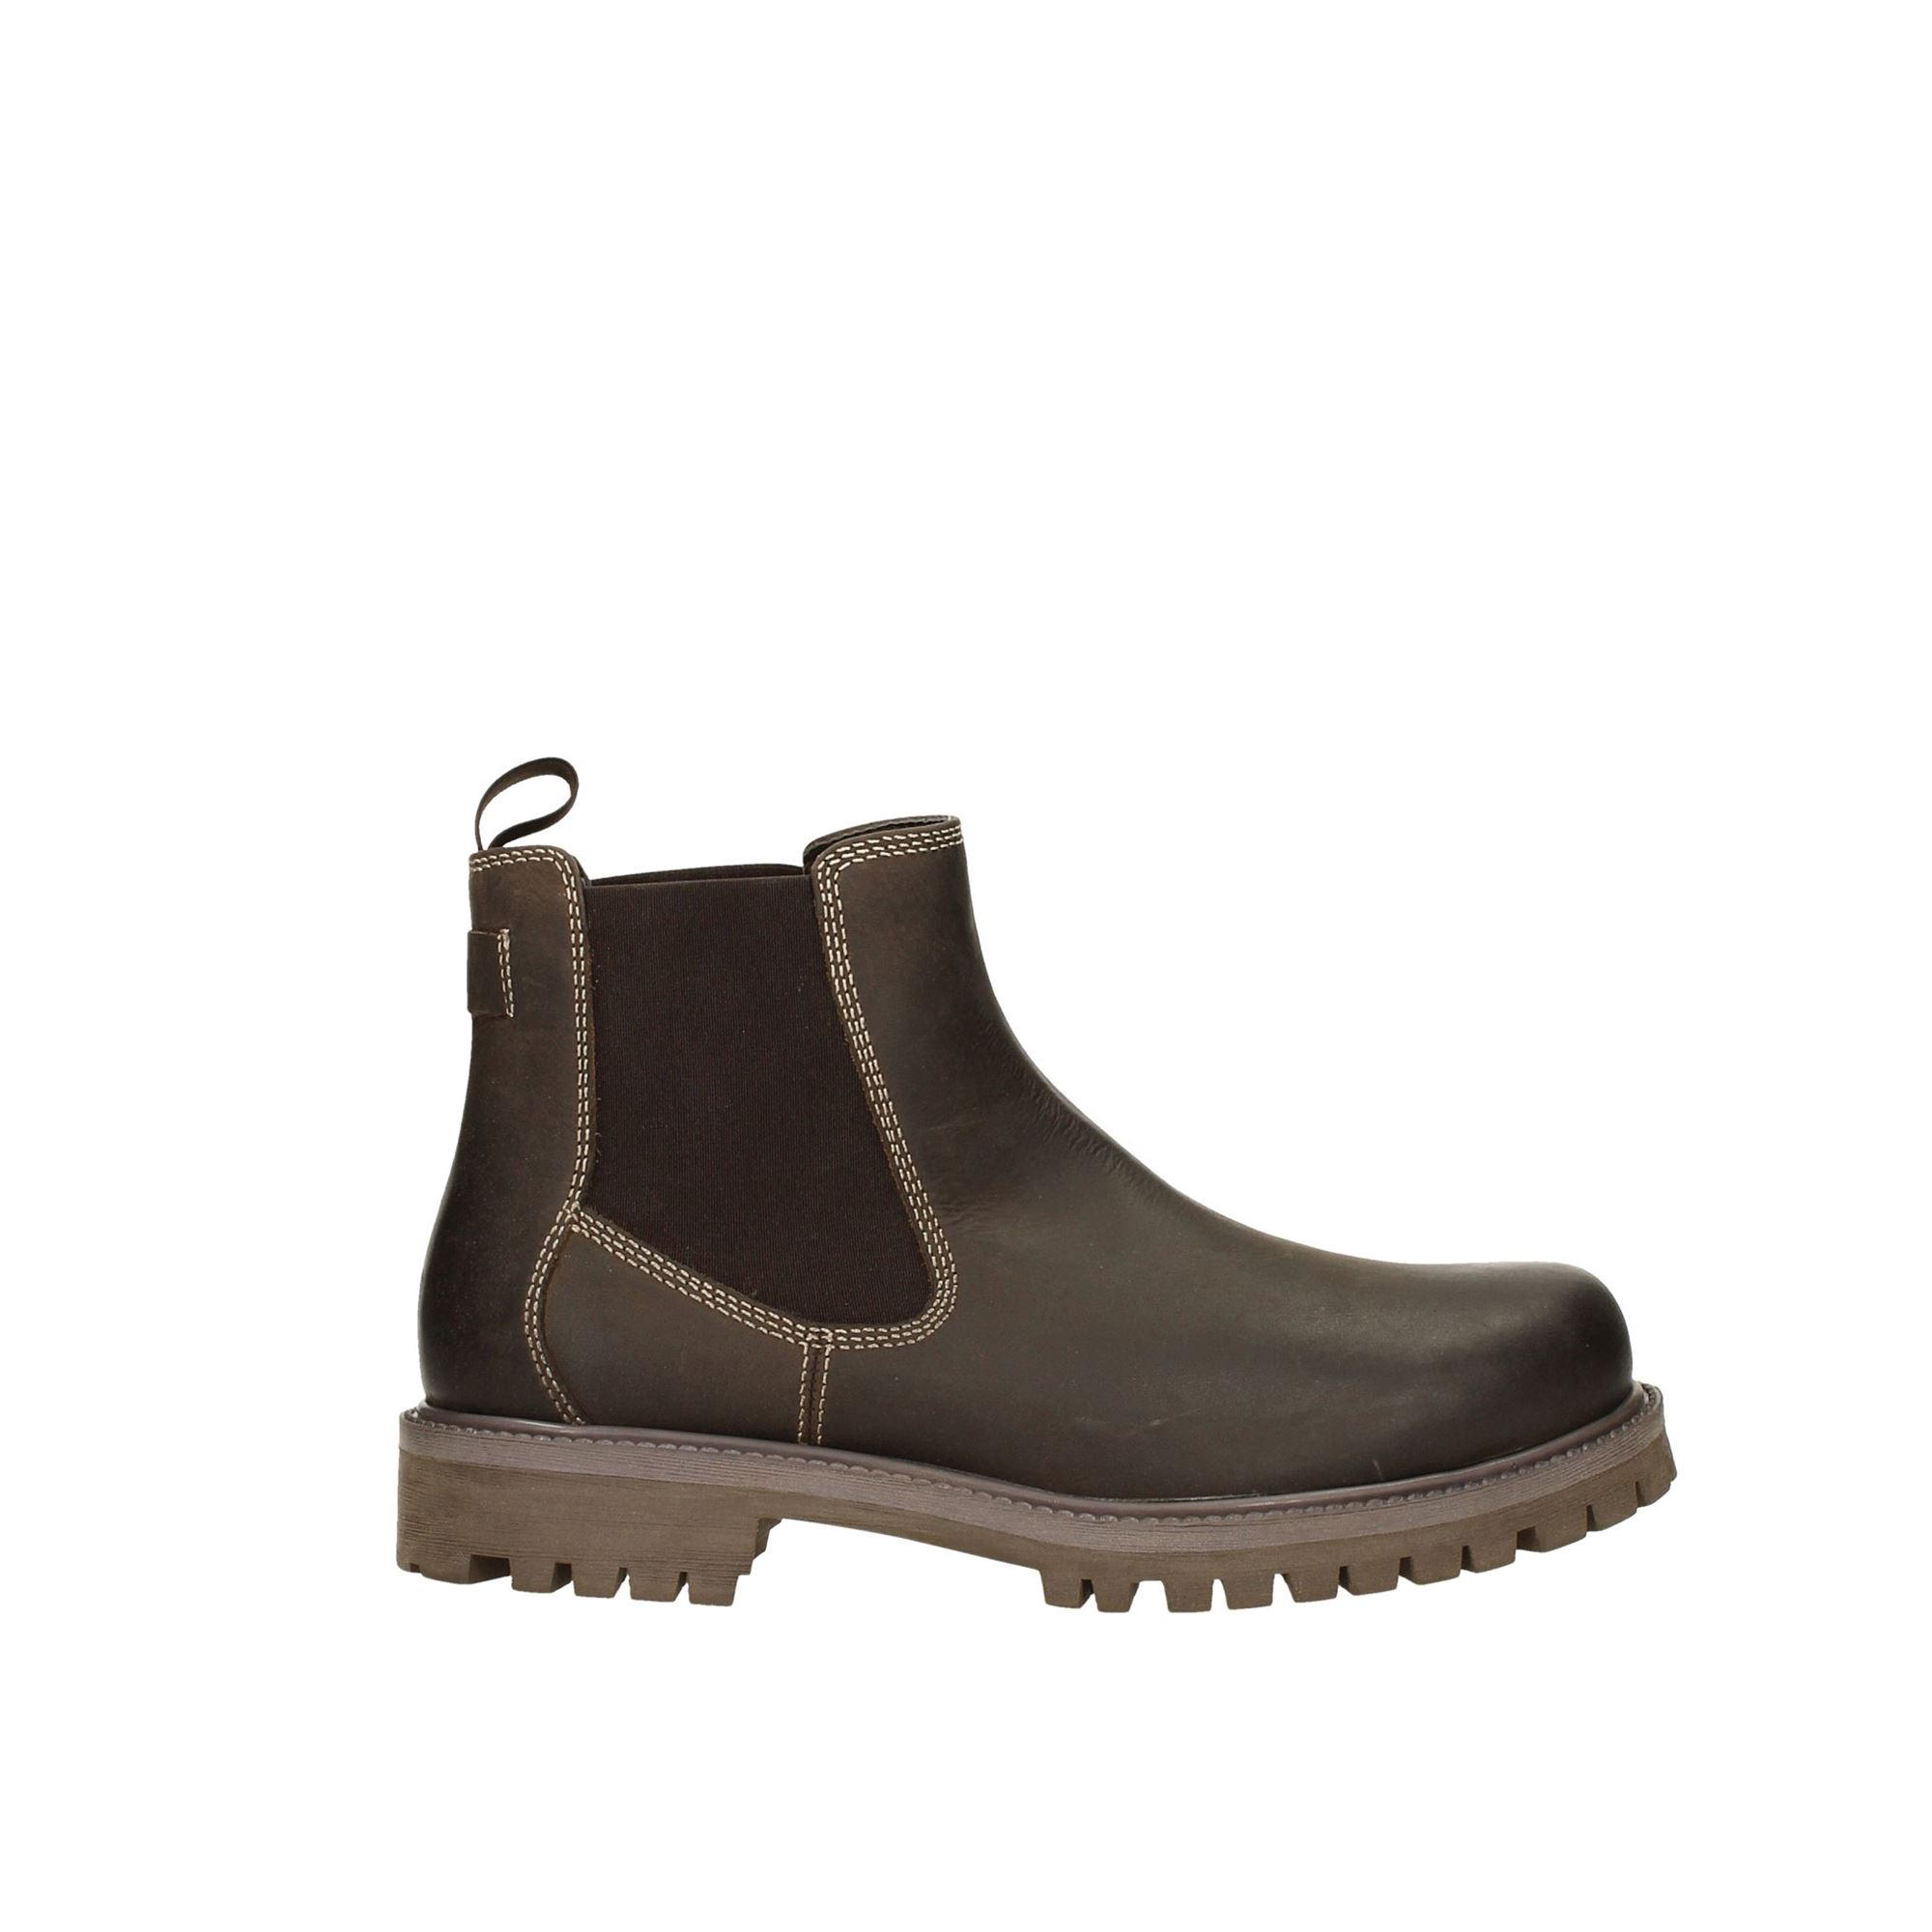 Tata Italia Shoes Man Stivaletti Brown 2341